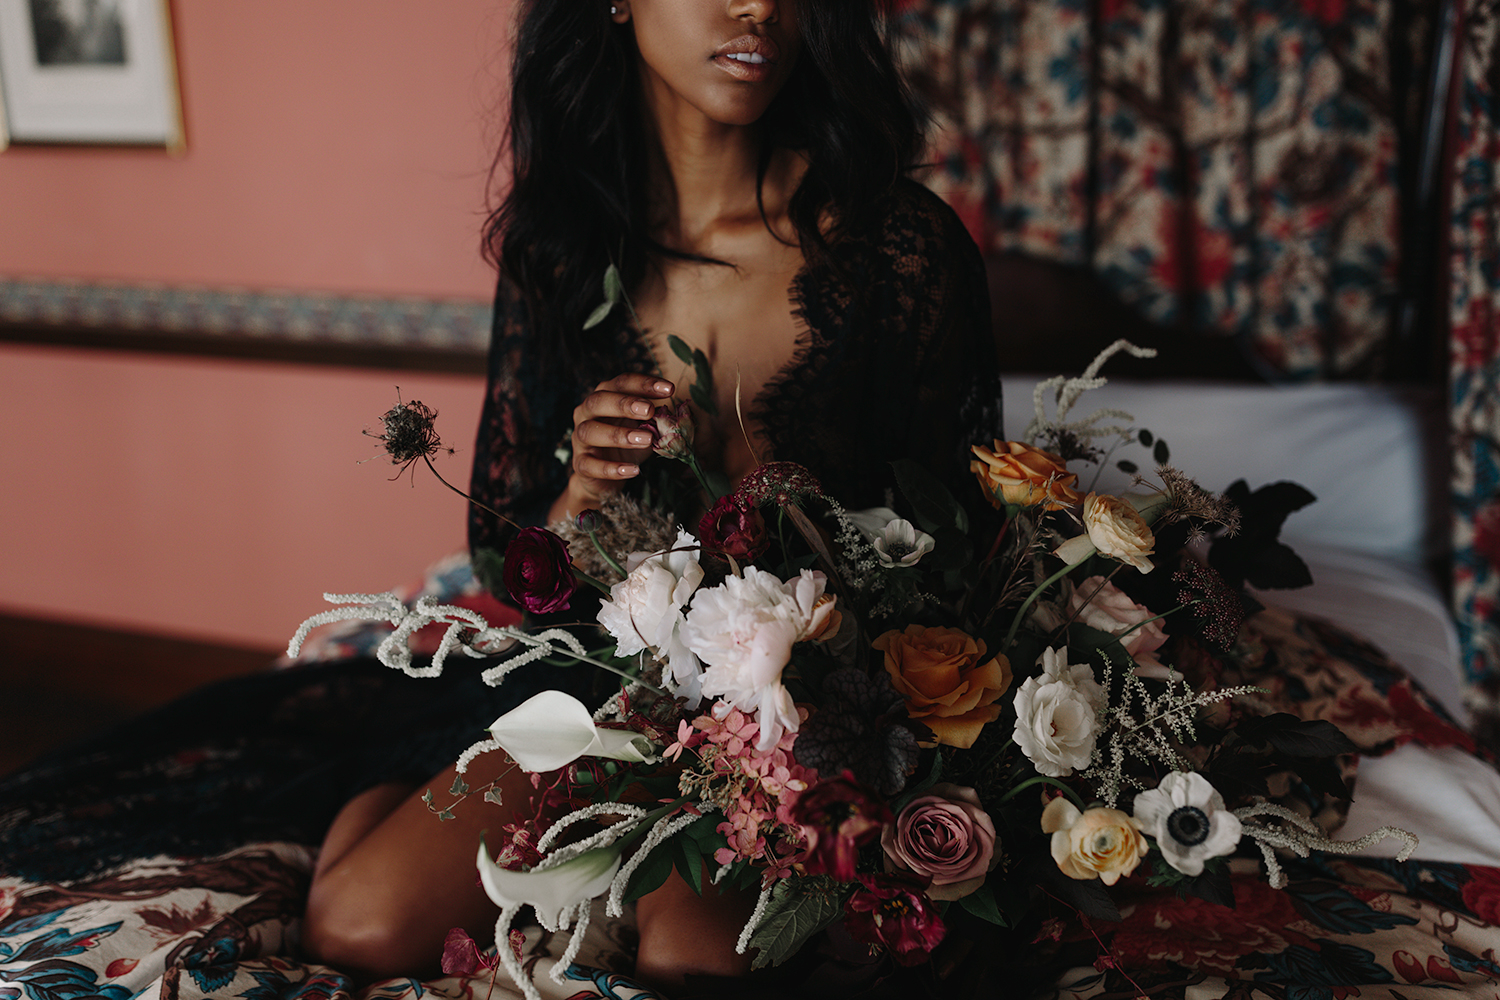 ryanne-hollies-photography-campbell-house-stylized-shoot-bedroom-intimate-boudoir-moody-intimate-vintage-inspired-bridal-boudoir-bridal-robe-by-cataflo-portrait-fine-art-florals-by-hunt-and-gather-artistic.jpg